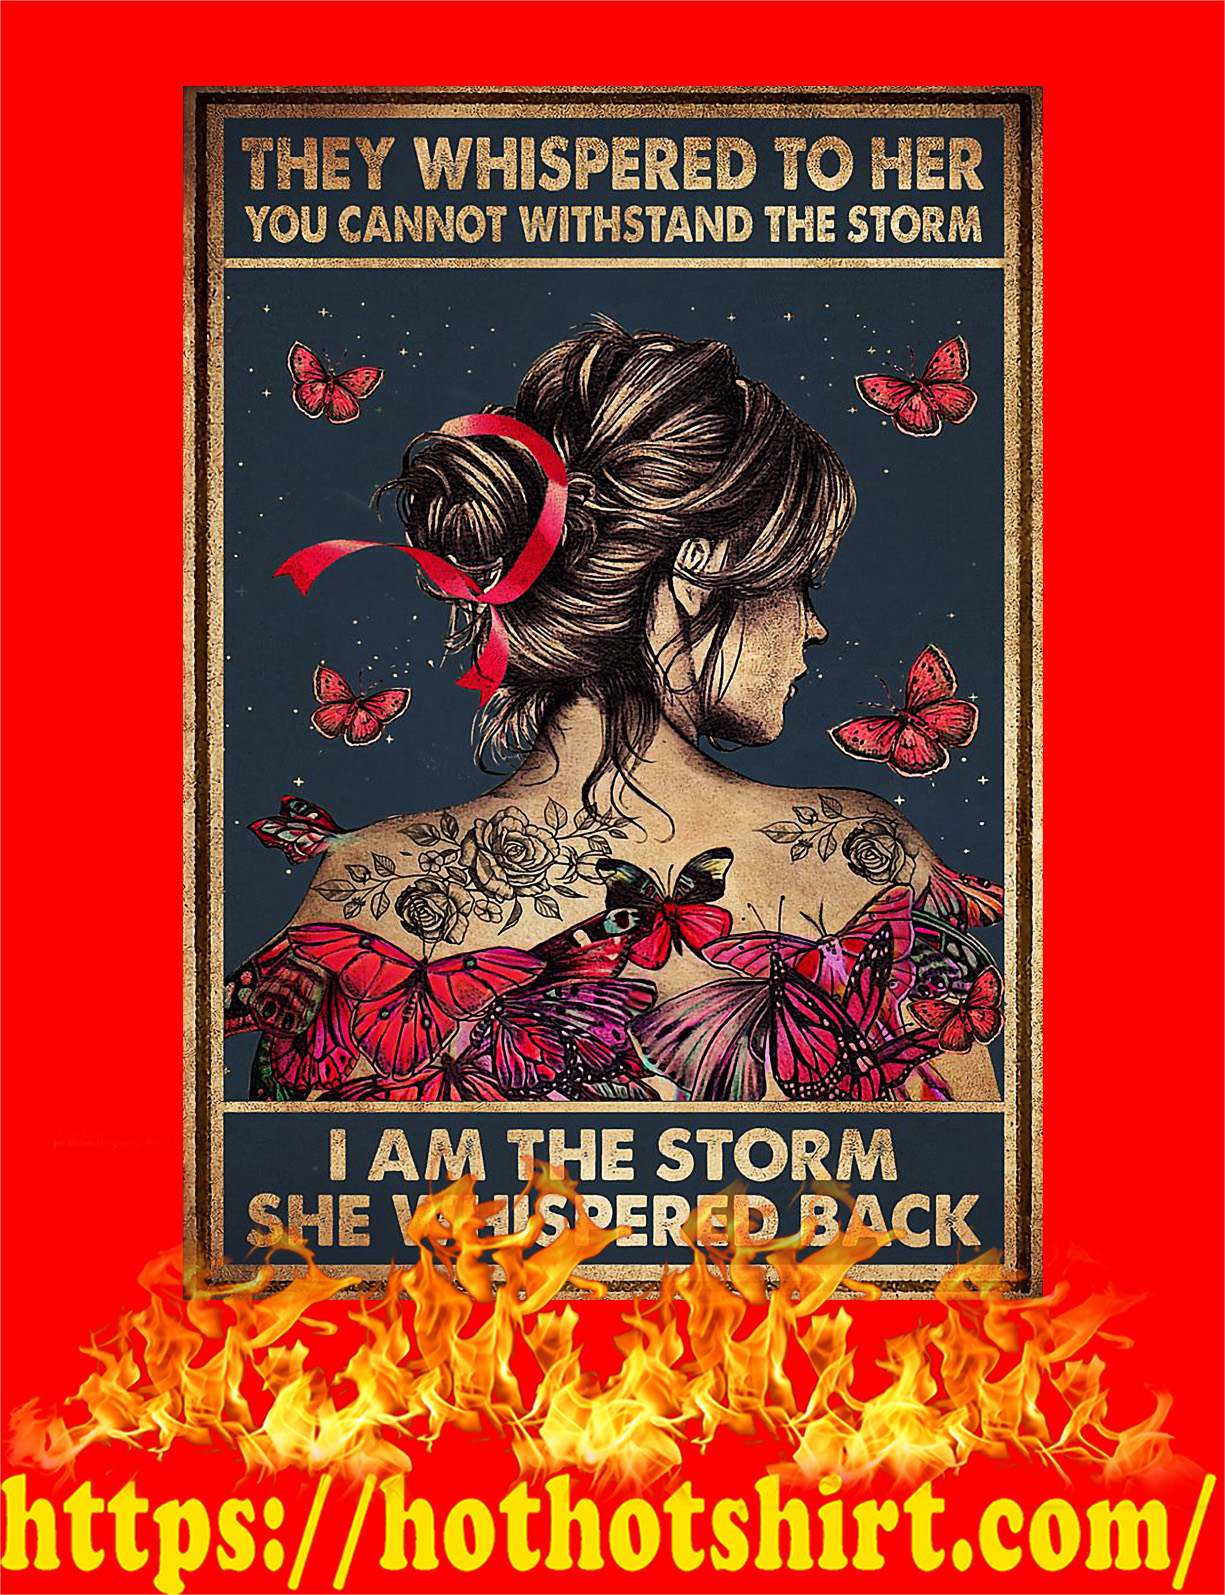 Breast cancer butterfly they whispered to her you cannot withstand the storm poster - A3